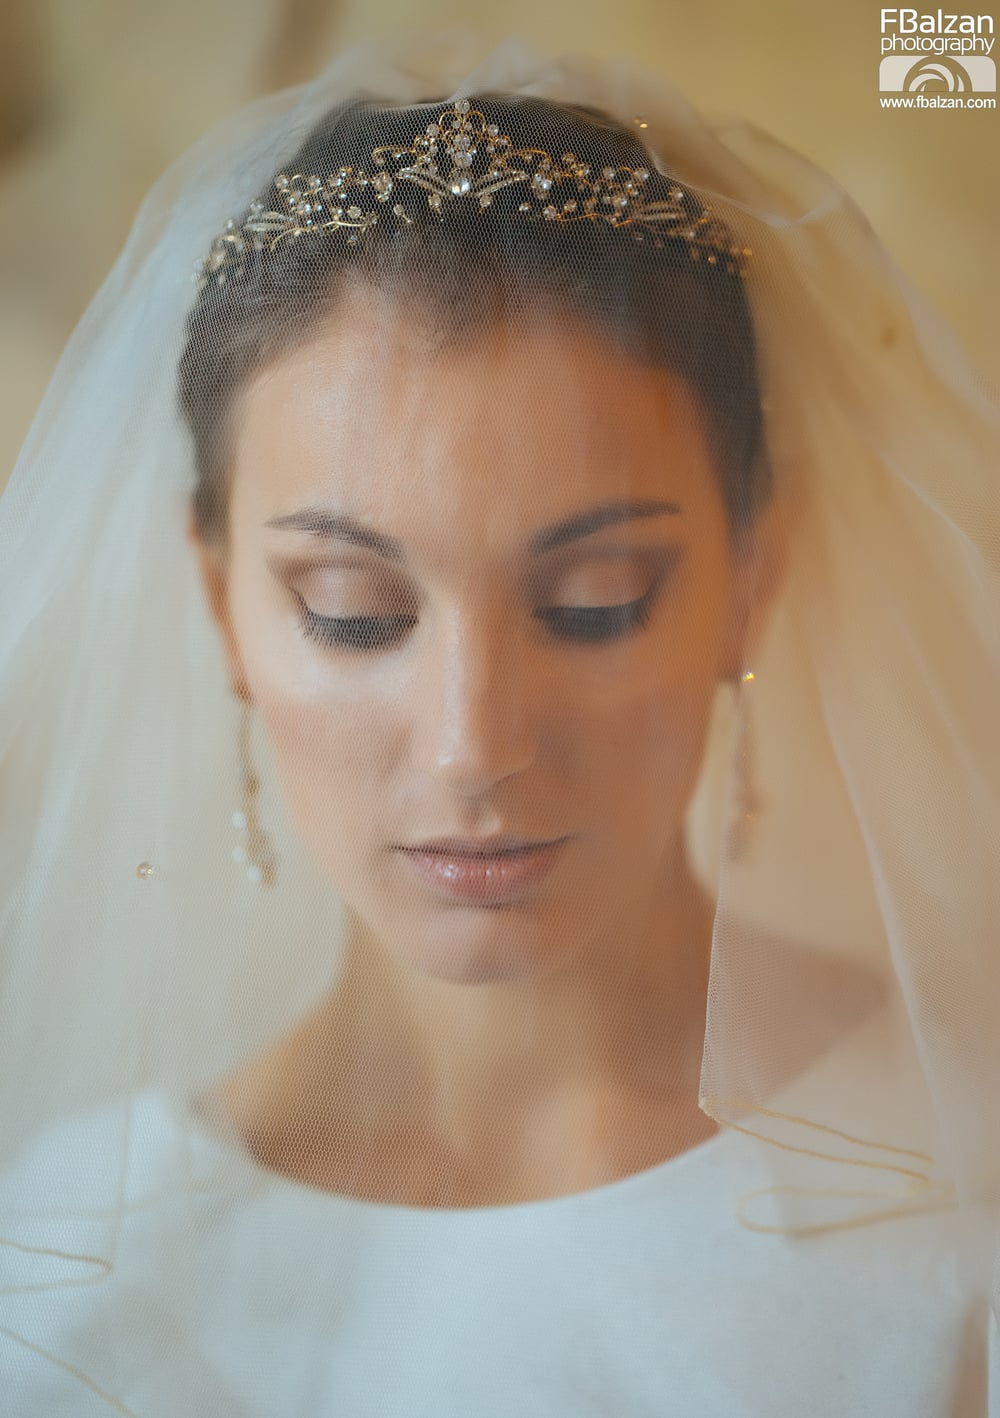 247 -  Montekristo Bride shootout-Edit.jpg